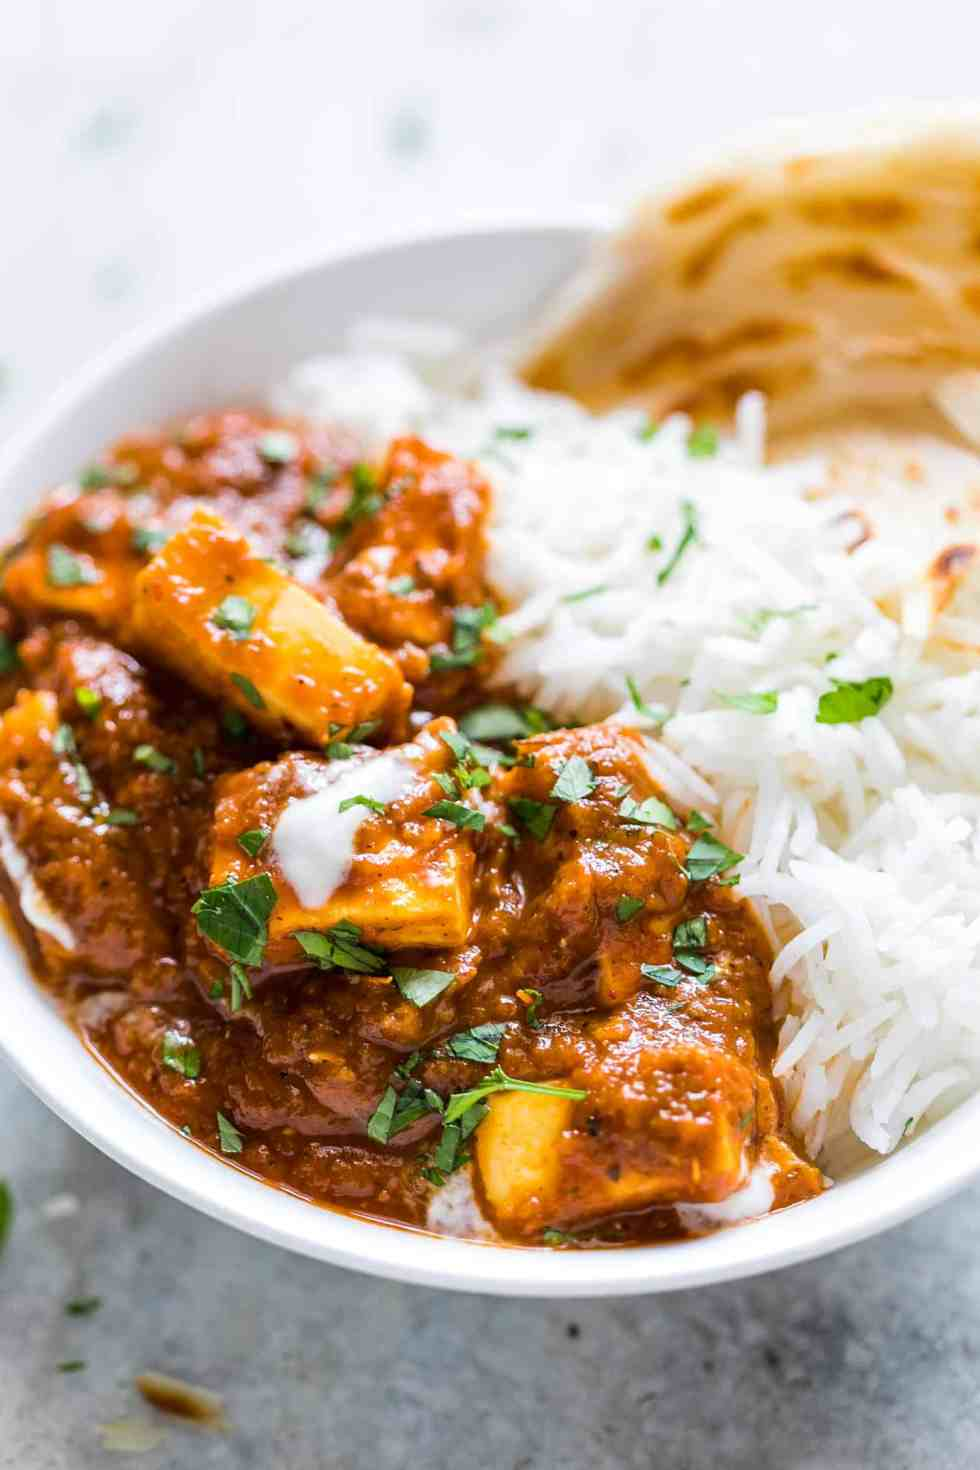 Here's an easy recipe for the perfect restaurant style paneer butter masala for all you paneer (cottage cheese) lovers! I love serving this with parathas and jeera rice. It's always a hit with family and guests!